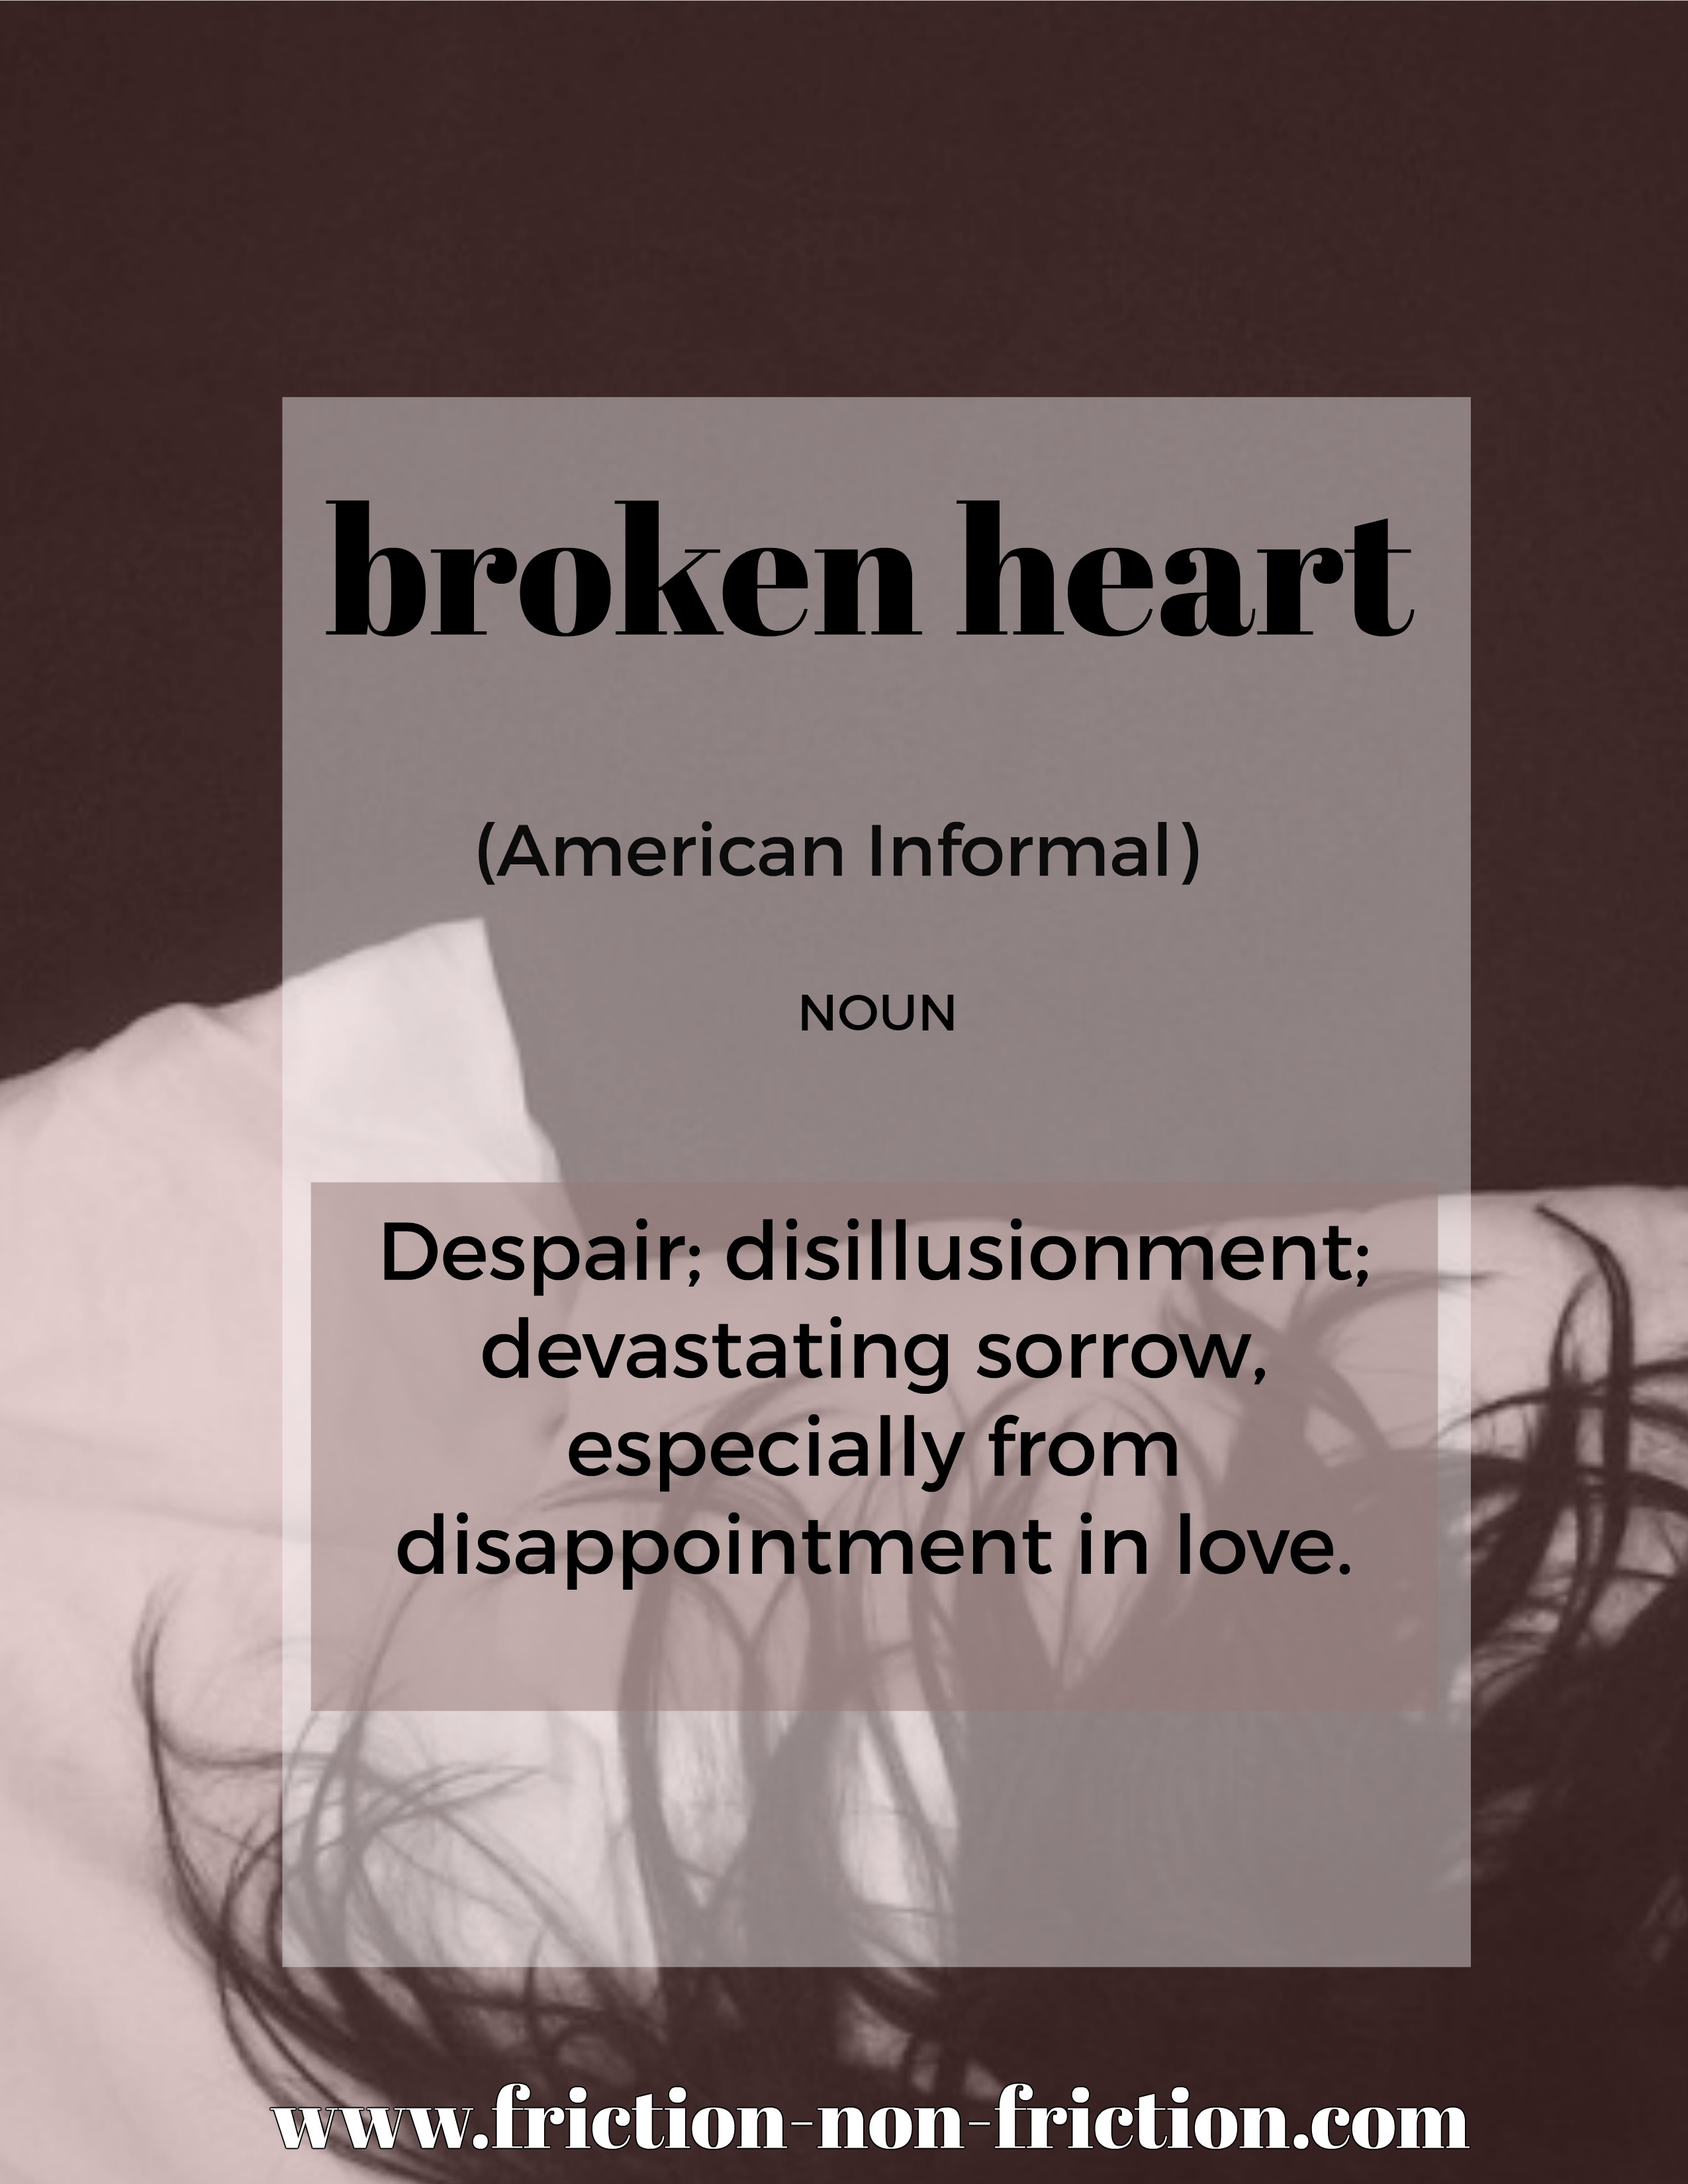 Broken Heart -- another great FRICTIONARY definition from Friction non Friction